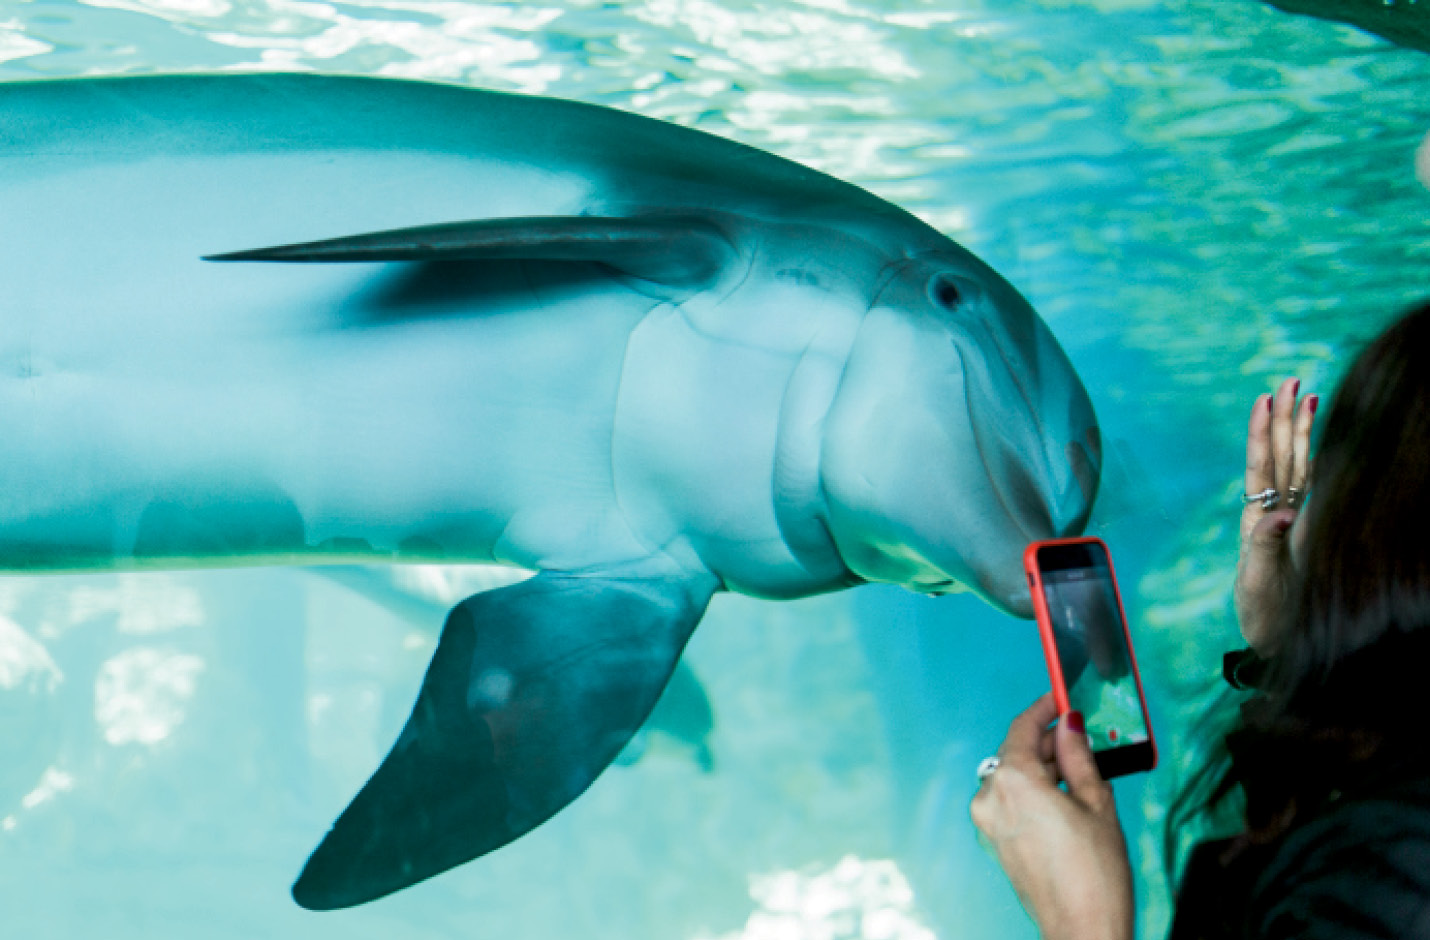 """Captivating & Captive: The Marine Mammal Protection Act prohibits the """"take"""" of wild marine mammals, including dolphins, without a permit. Some animals born in captivity remain in controlled environments, such as at Marineland, a former amusement park in Florida that's now part of the Georgia Aquarium dolphin conservation program."""